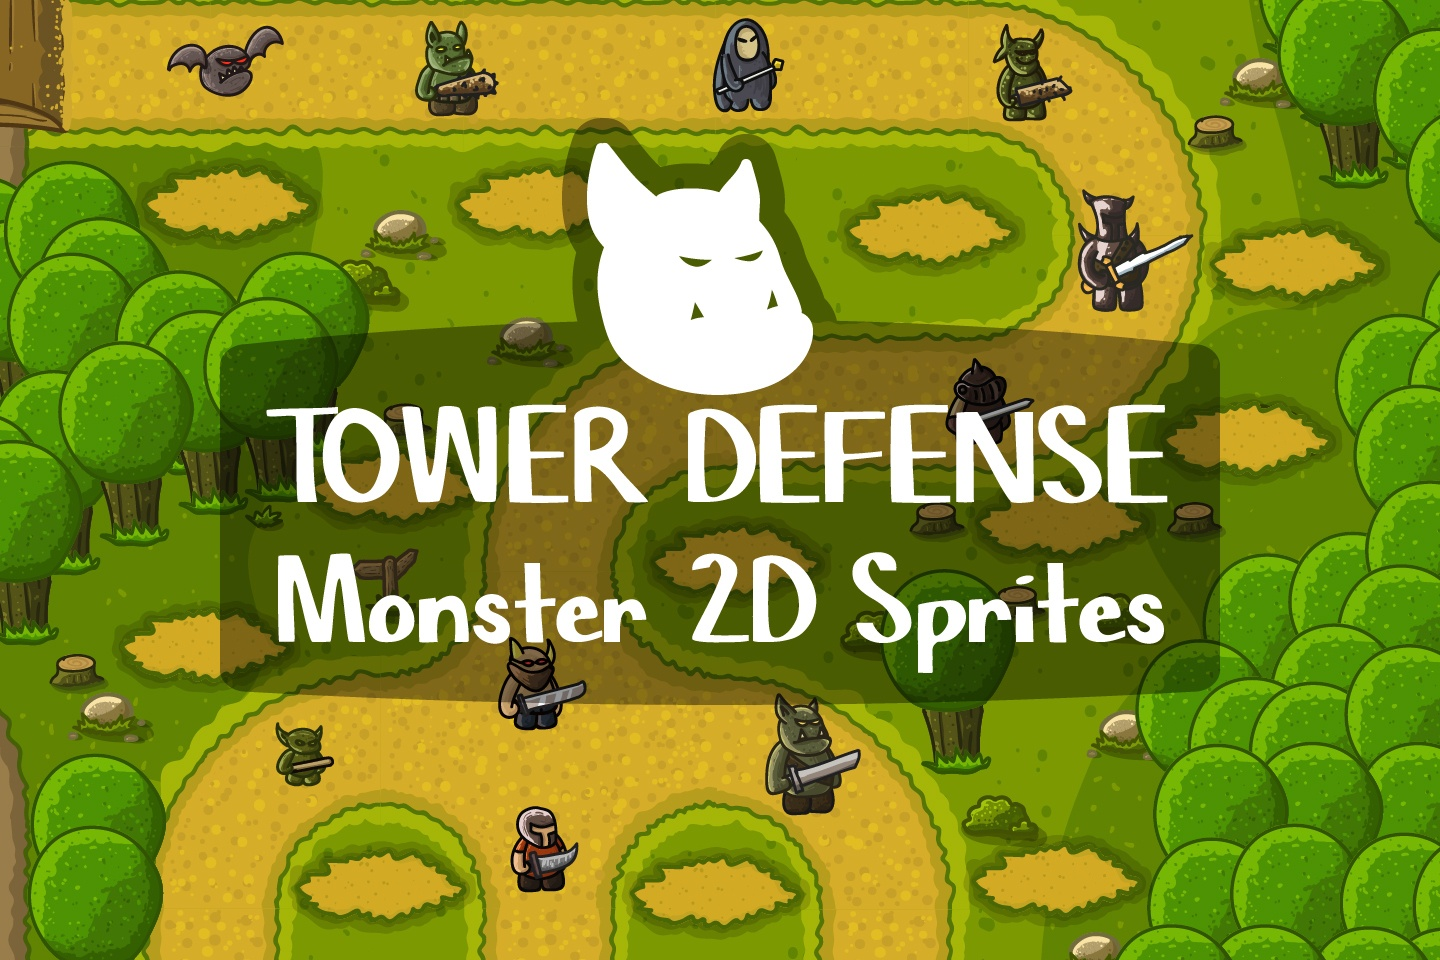 Tower Defense Monster 2D Sprites